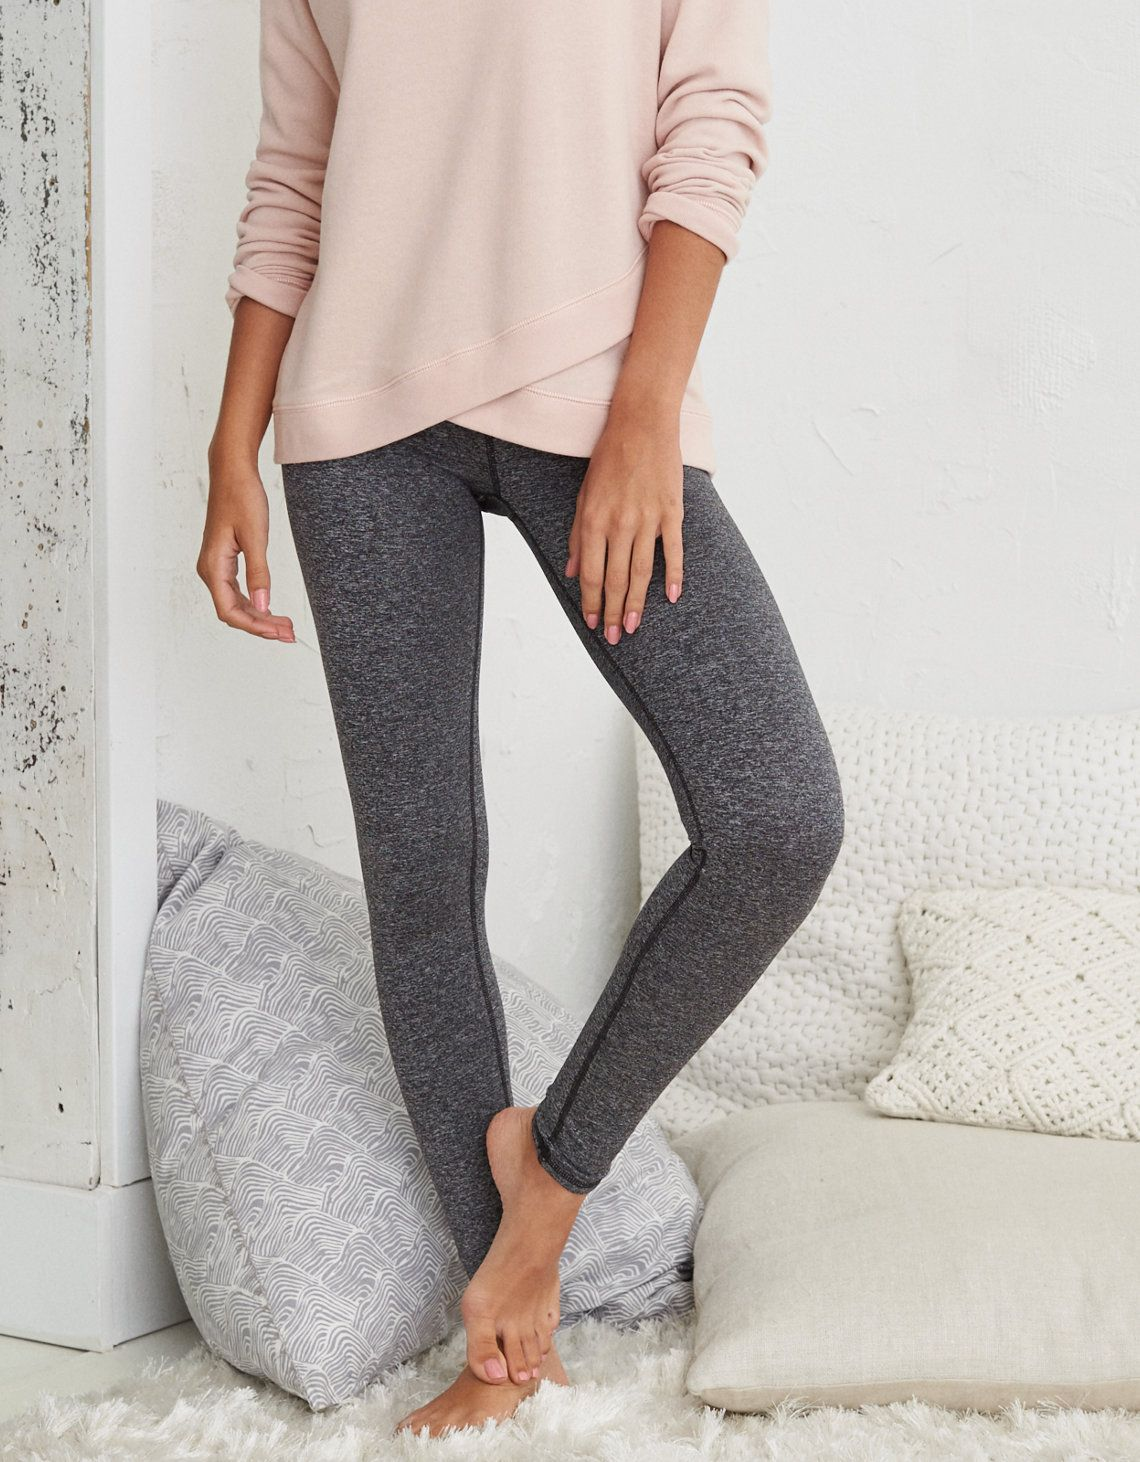 f31a06796a151 Product Image Grab a great deal on yoga pants from clearance at Aerie. Find  your